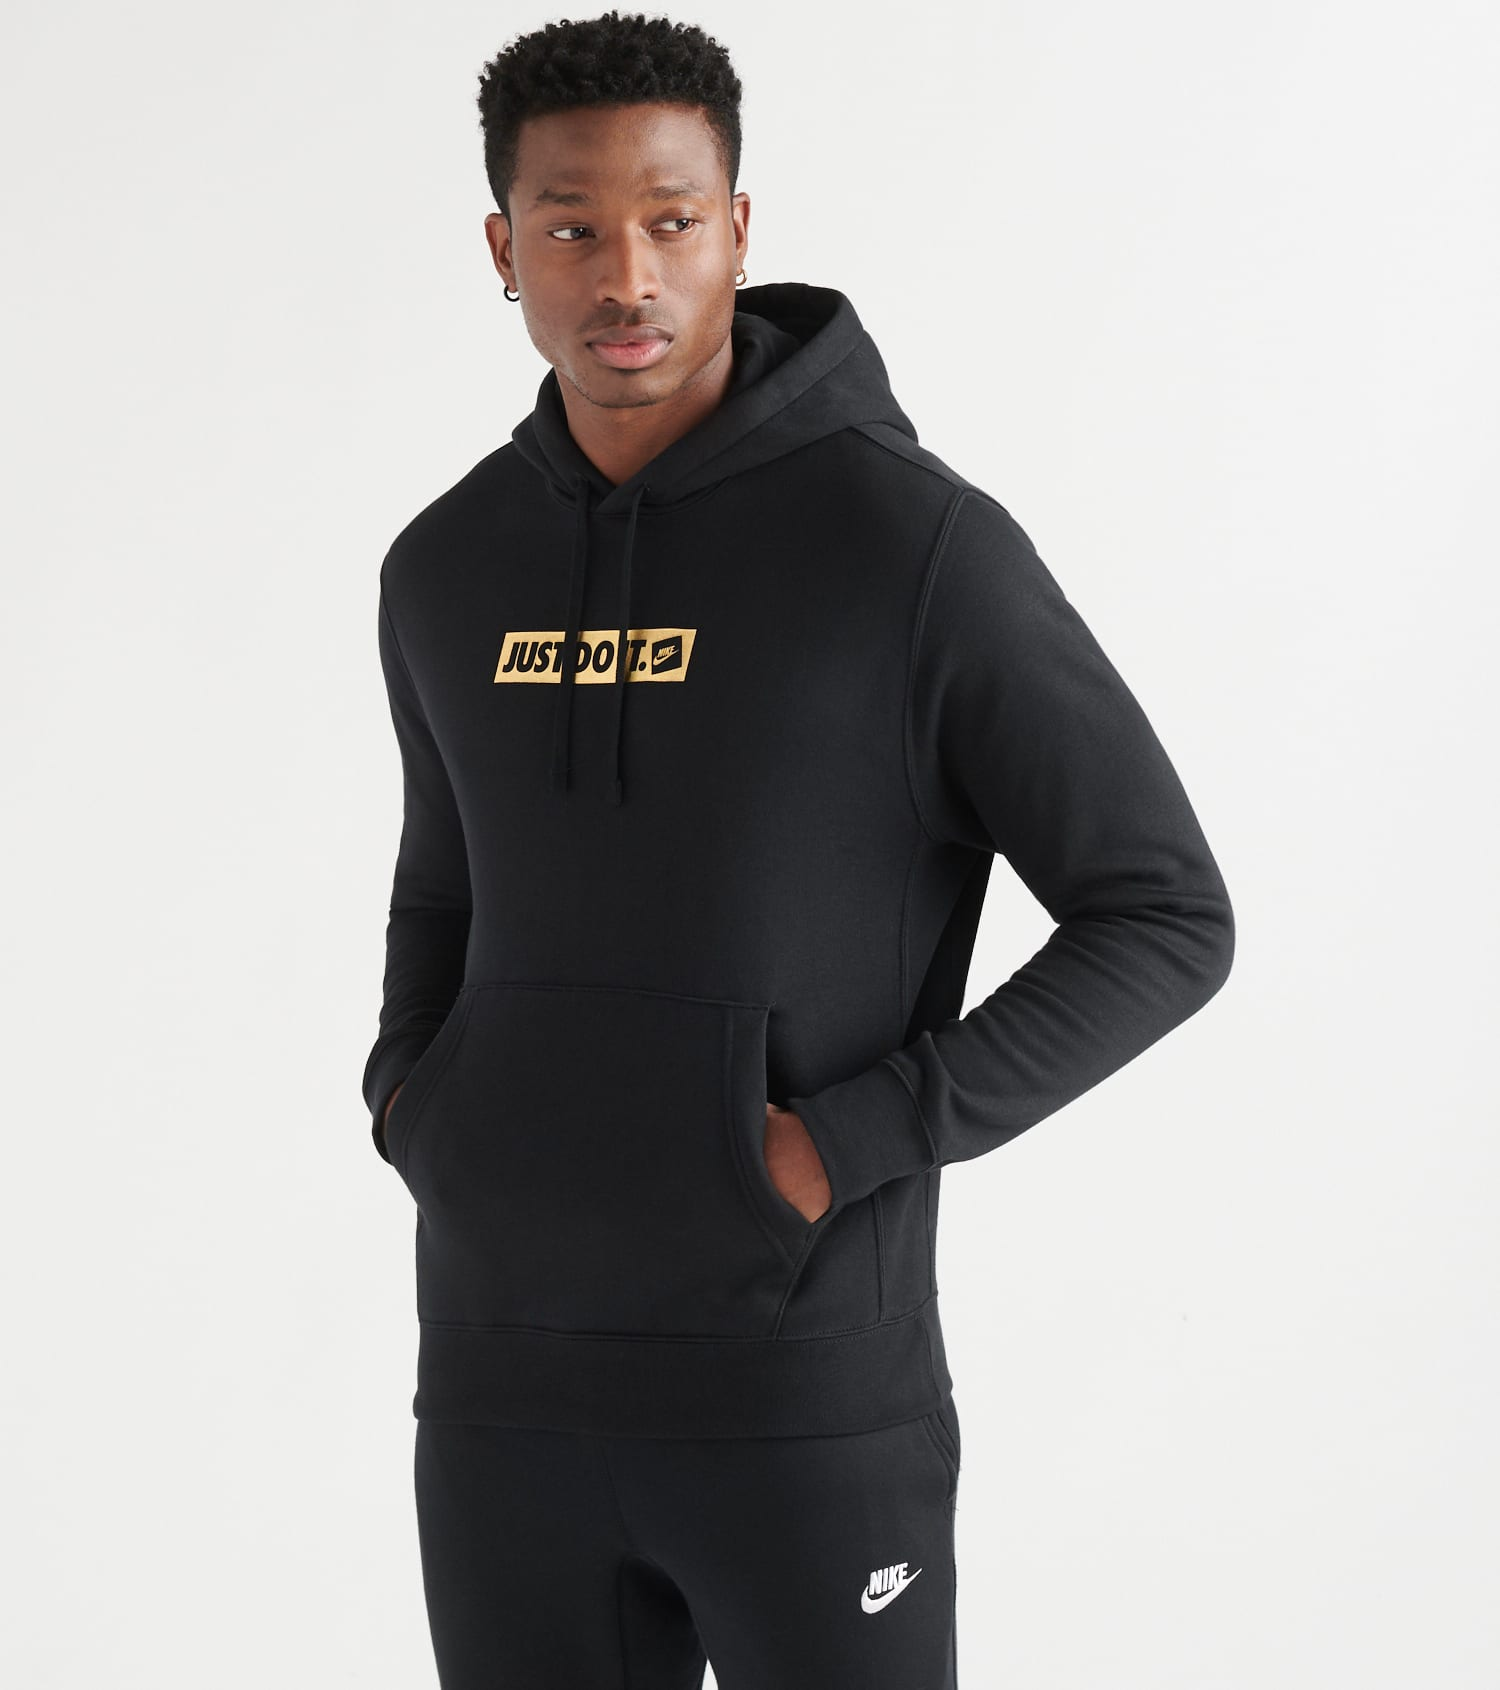 Nike NSW Just Do It Pullover Hoodie (Black) CQ4514 010